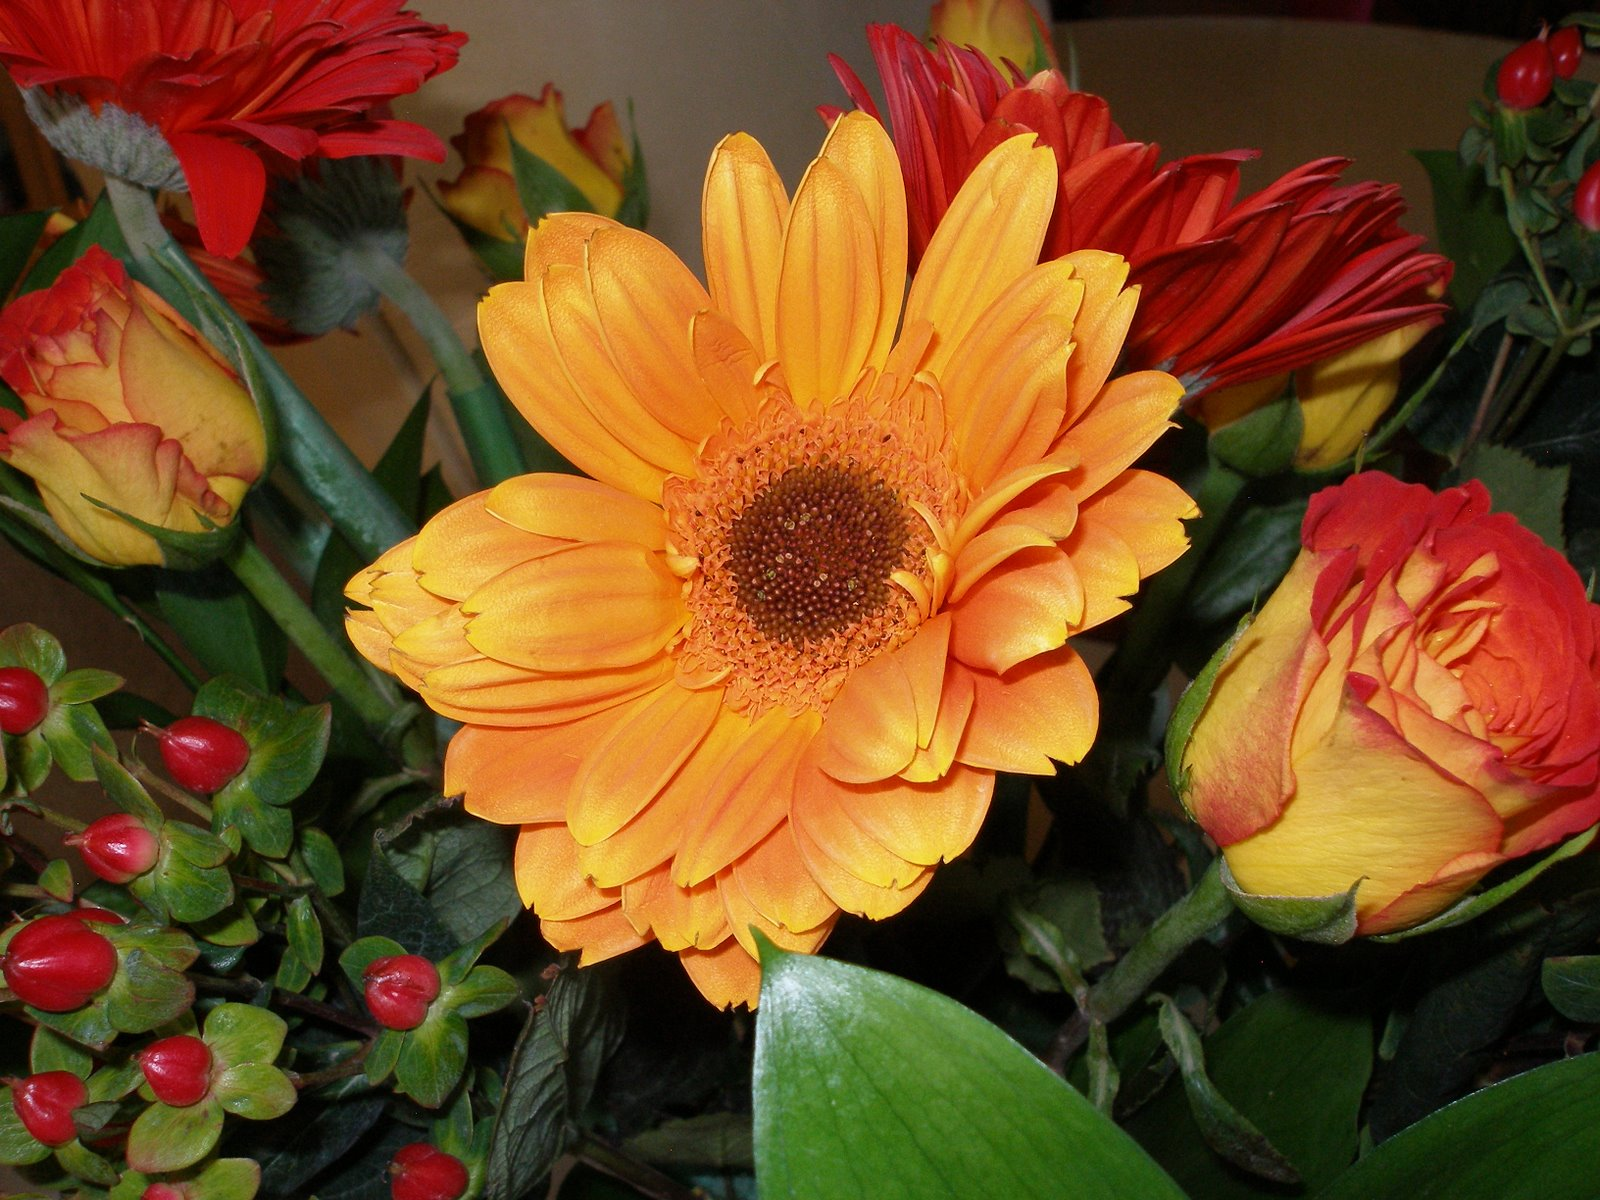 [Flowers+from+Teecie+Sept+20,+07+]